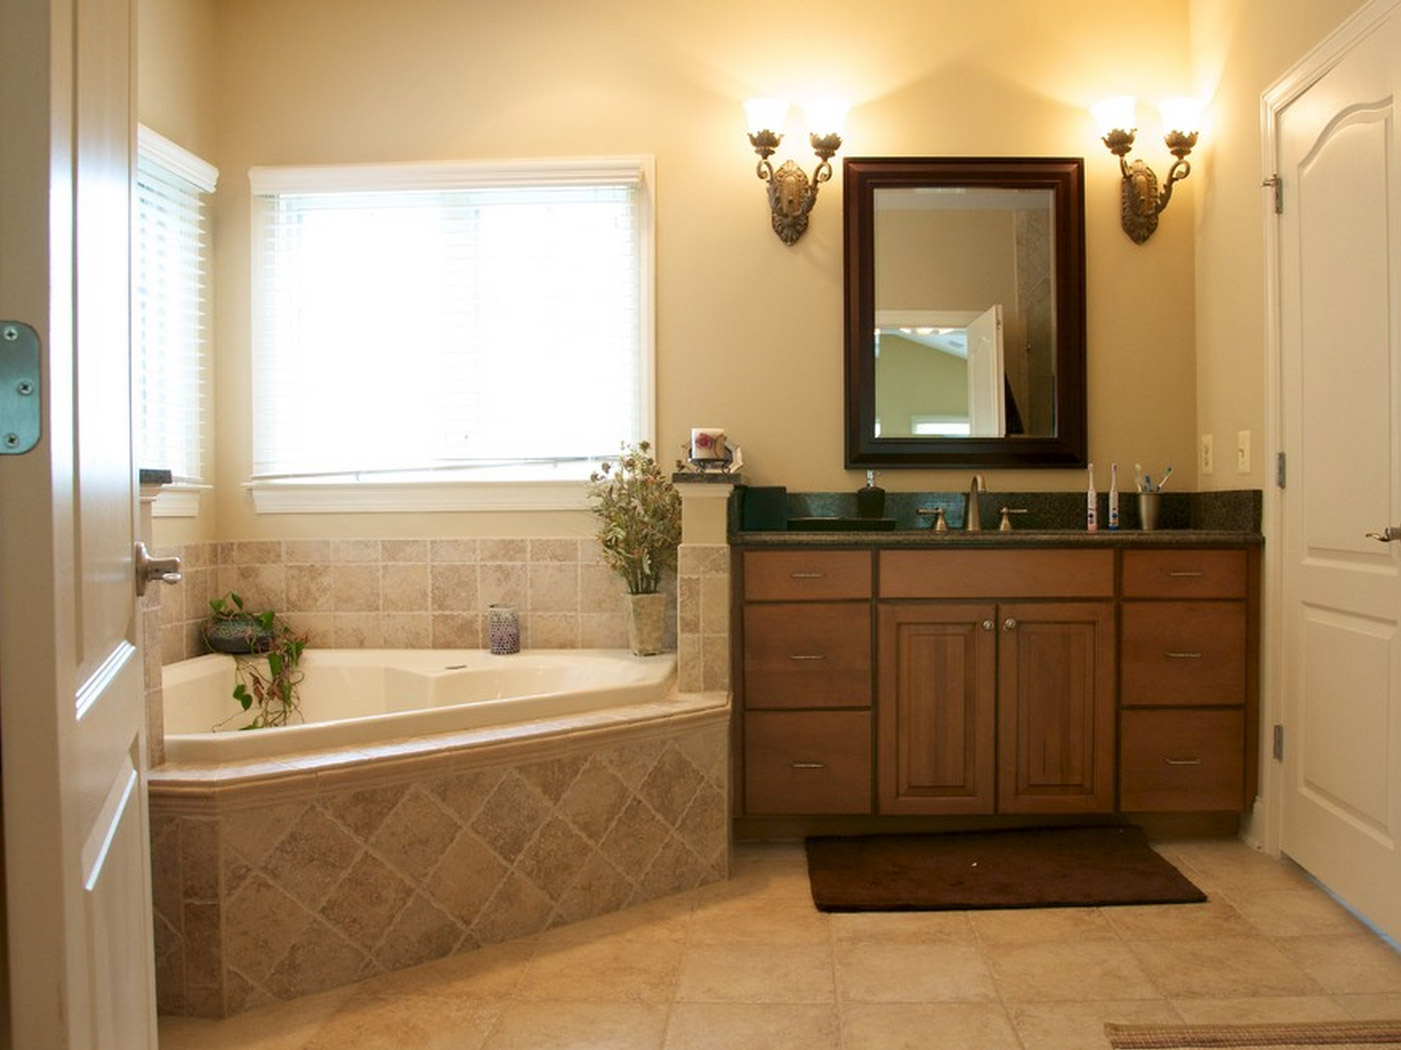 Spa tub in master bathroom remodel in Loudoun county VA